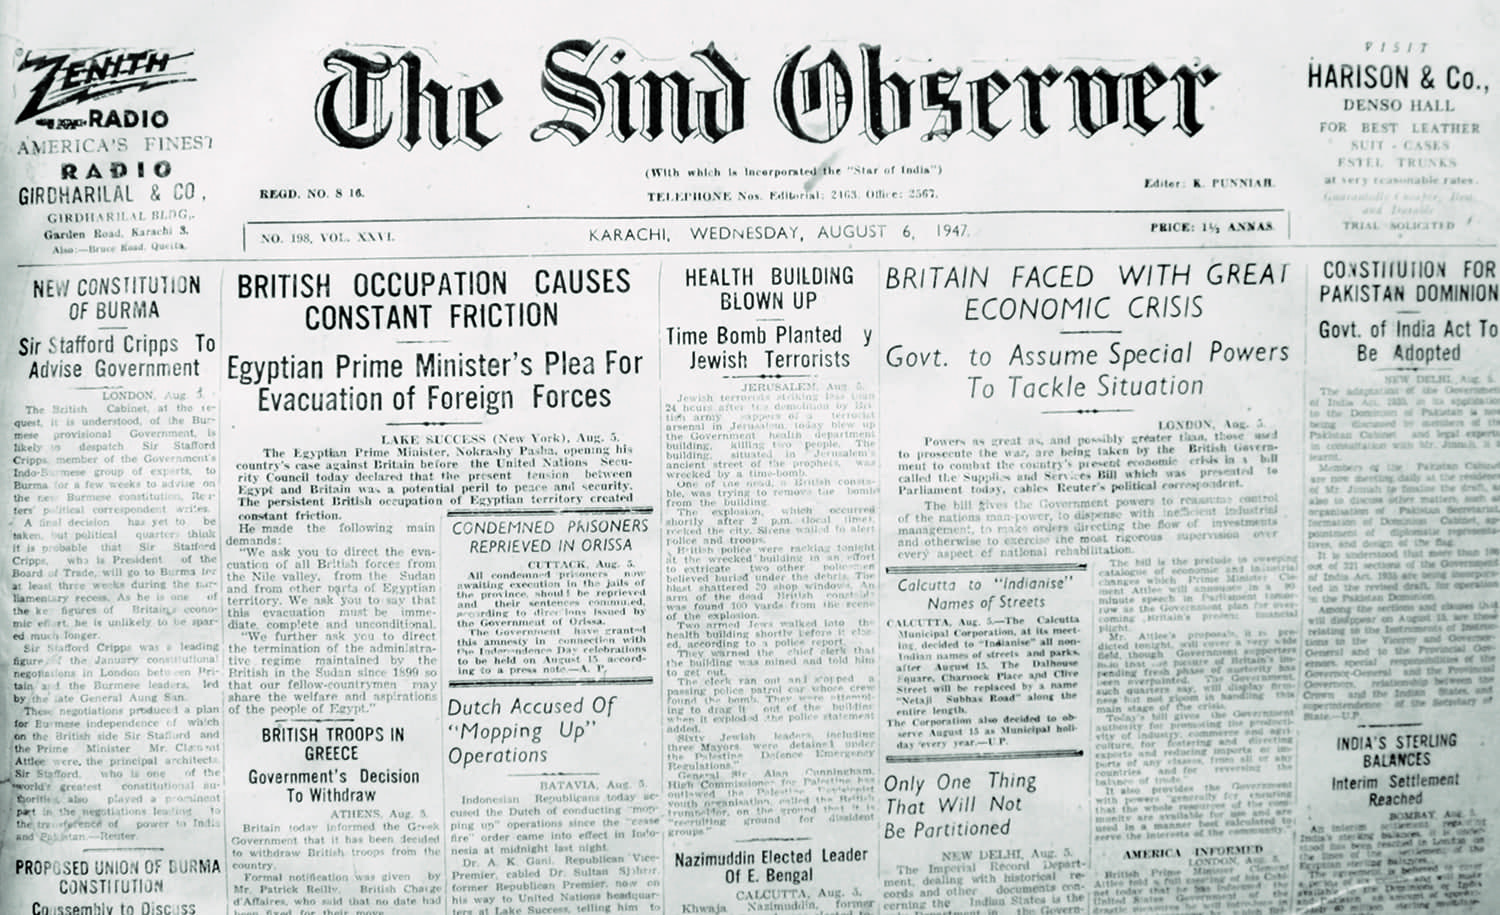 The Sind Observer was established in 1911 and ceased publication in 1953.